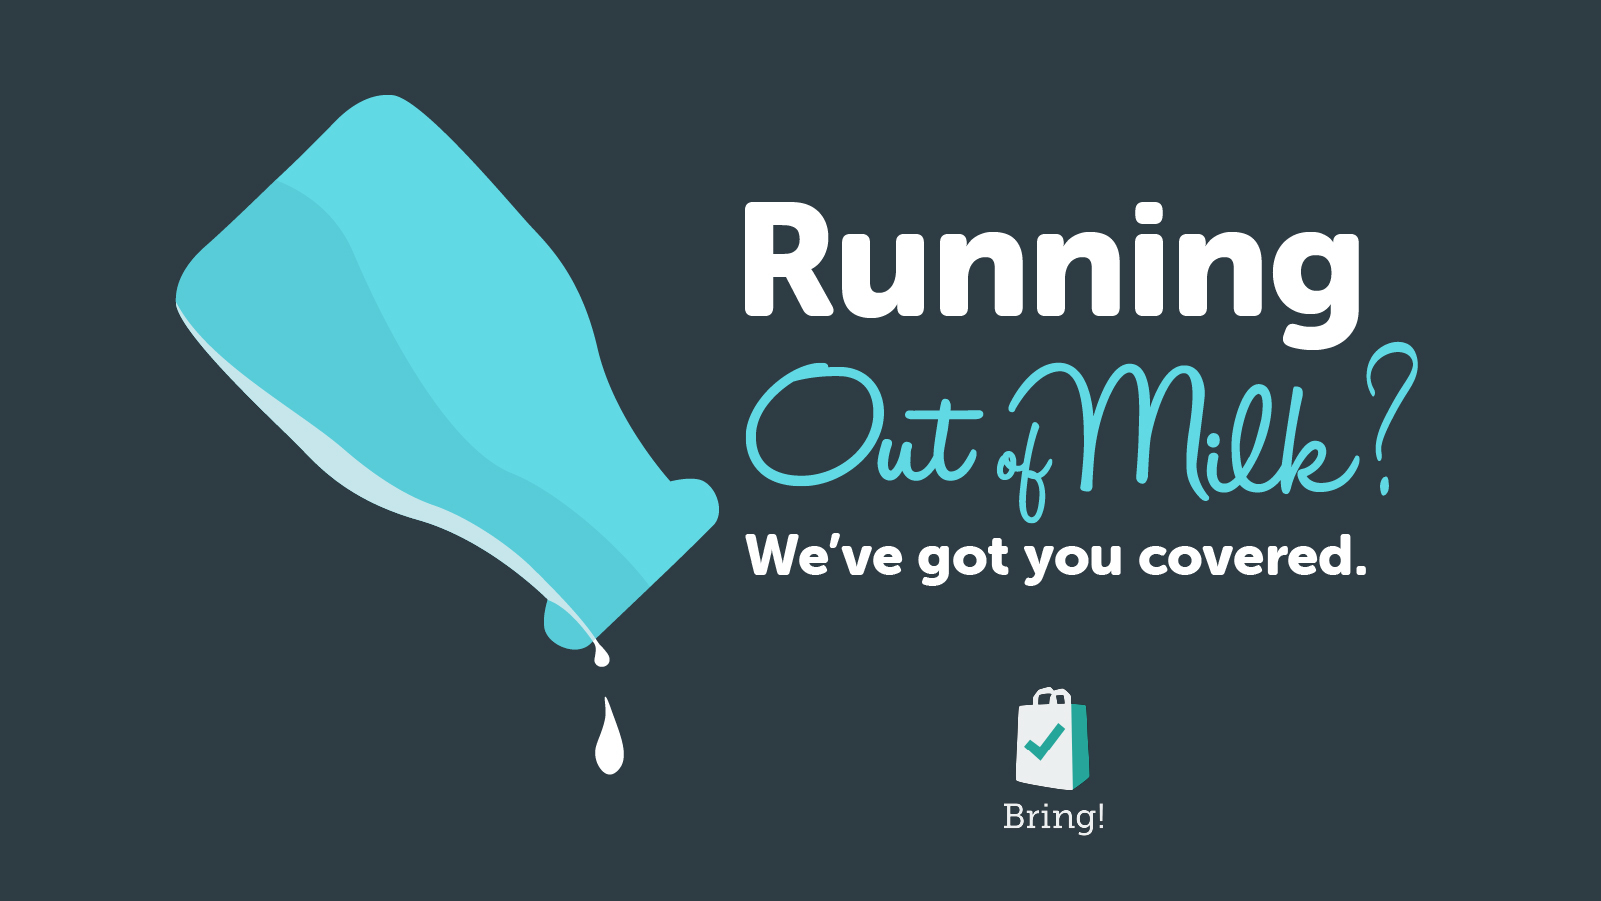 OUT OF MILK - BRING! IS THE BEST ALTERNATIVE